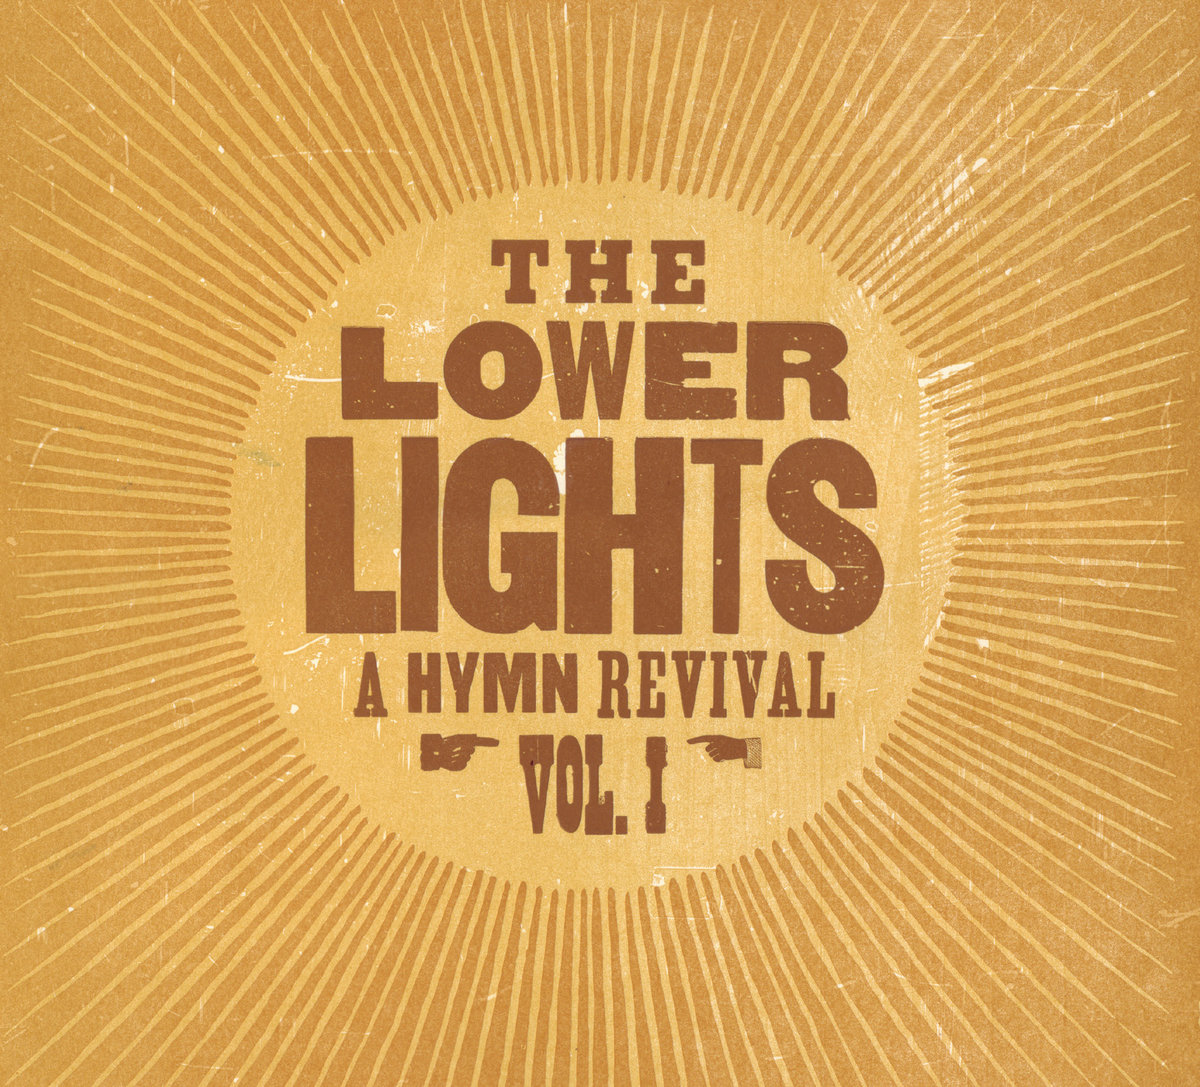 The Lower Lights A Hymn Revival The Lower Lights